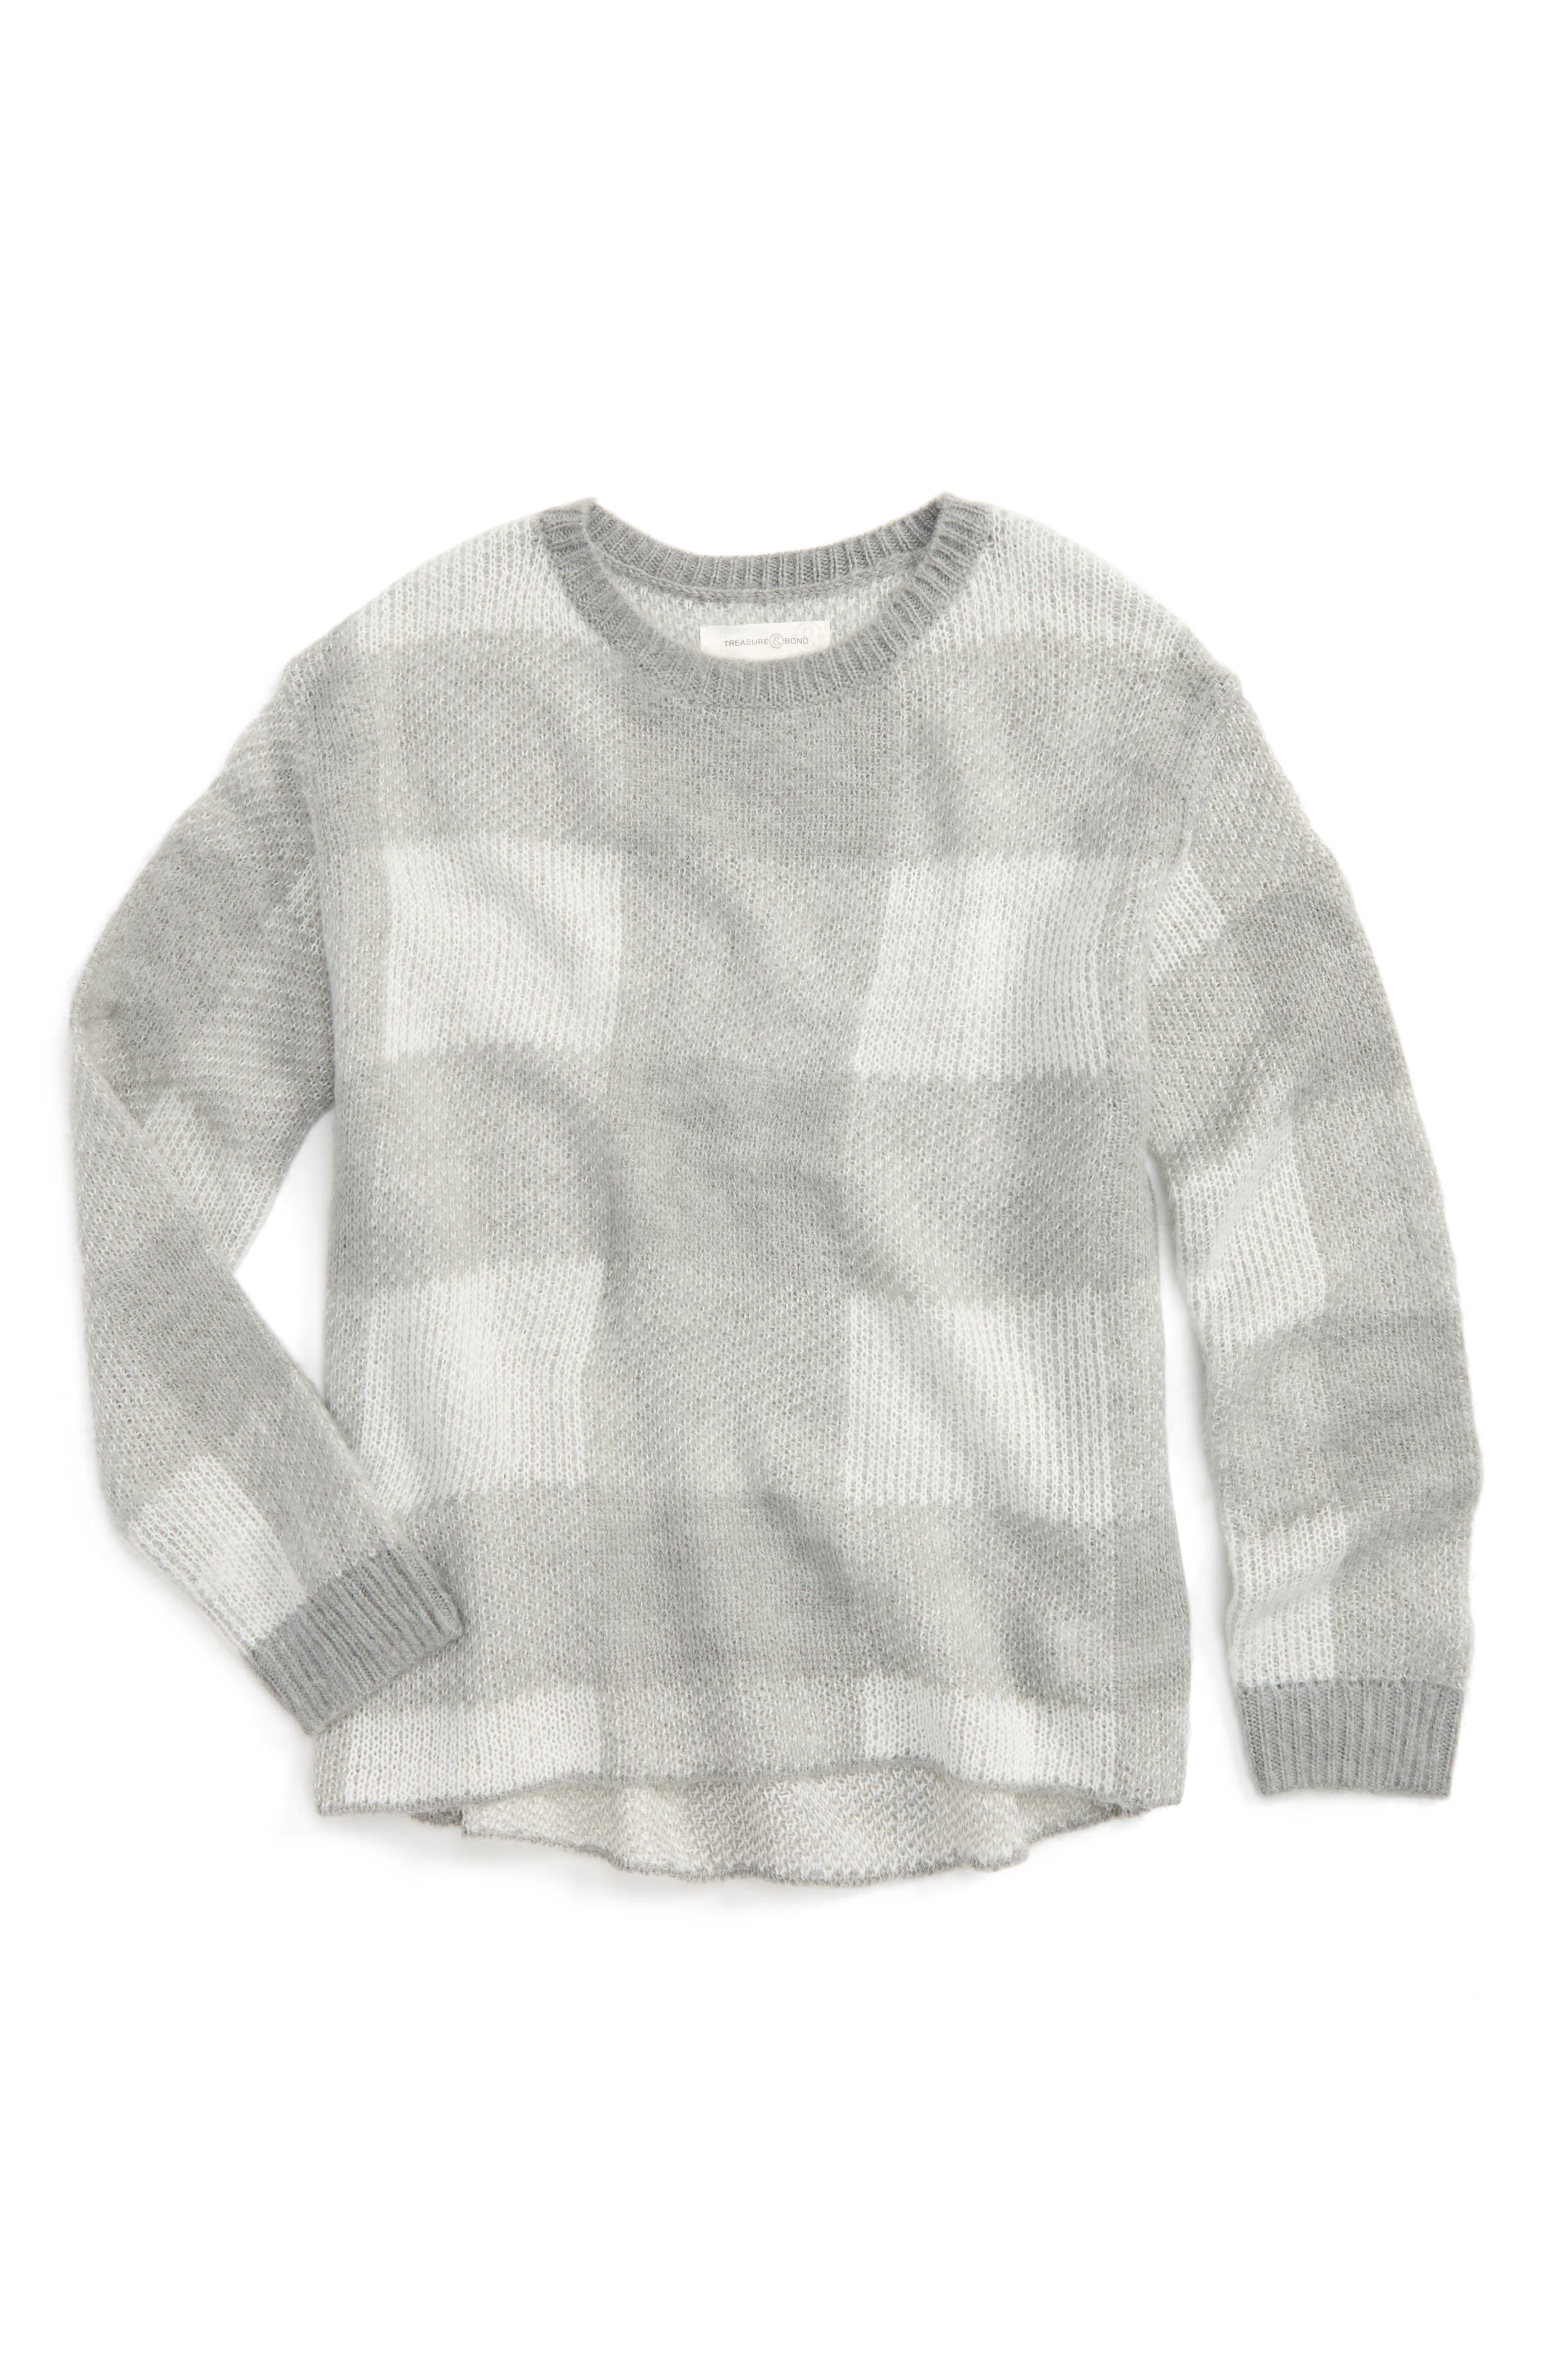 Treasure & Bond Check Brushed Knit Sweater (Big Girls)